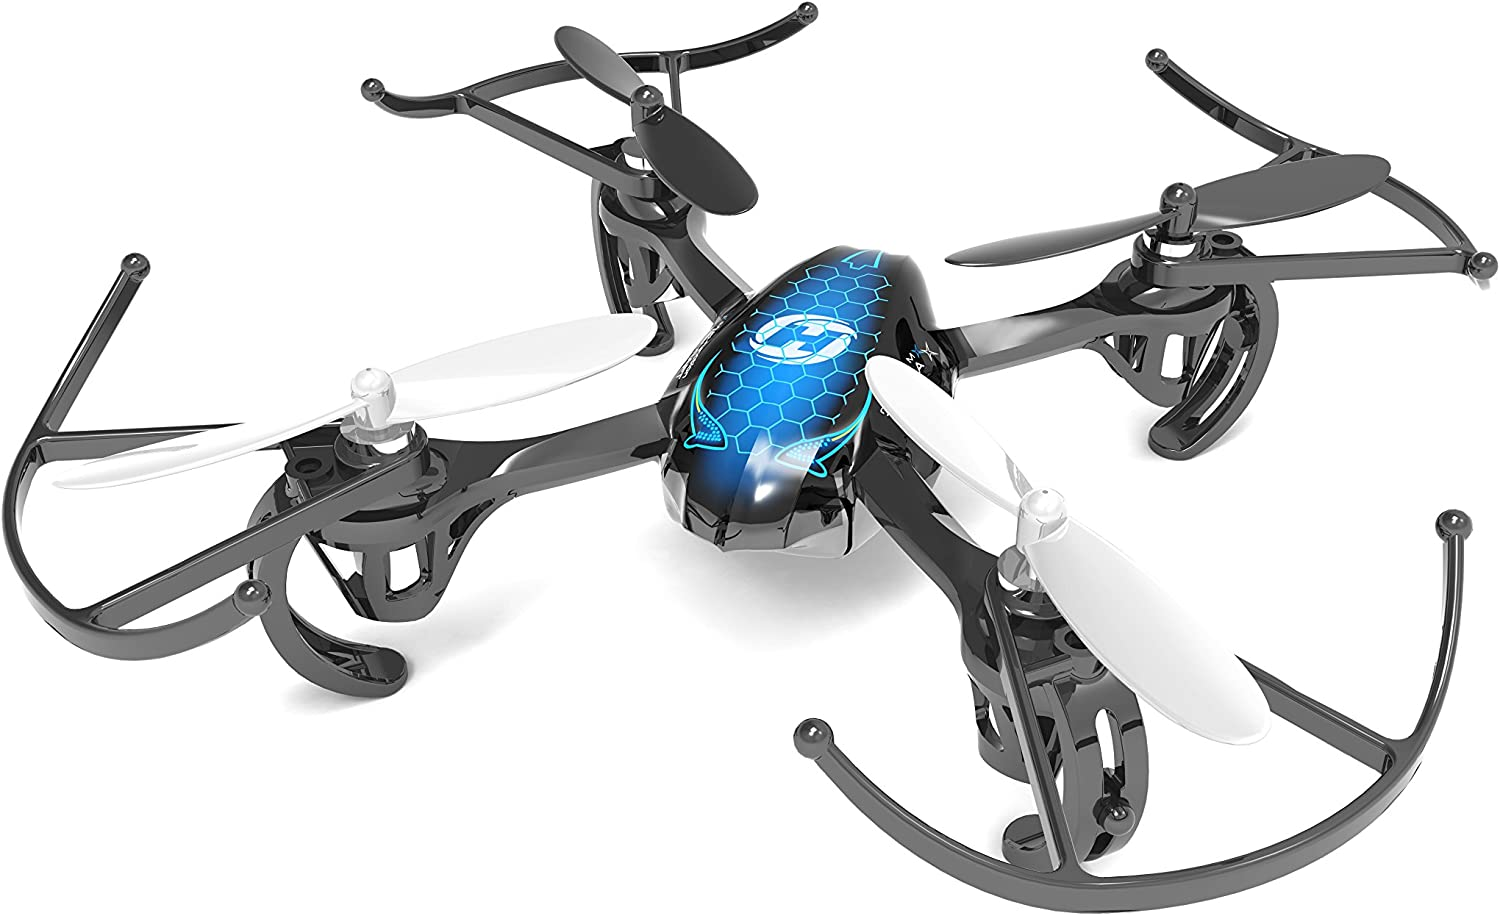 Top 15 Best Remote Control Helicopter For Kid (2020 Reviews & Buying Guide) 1